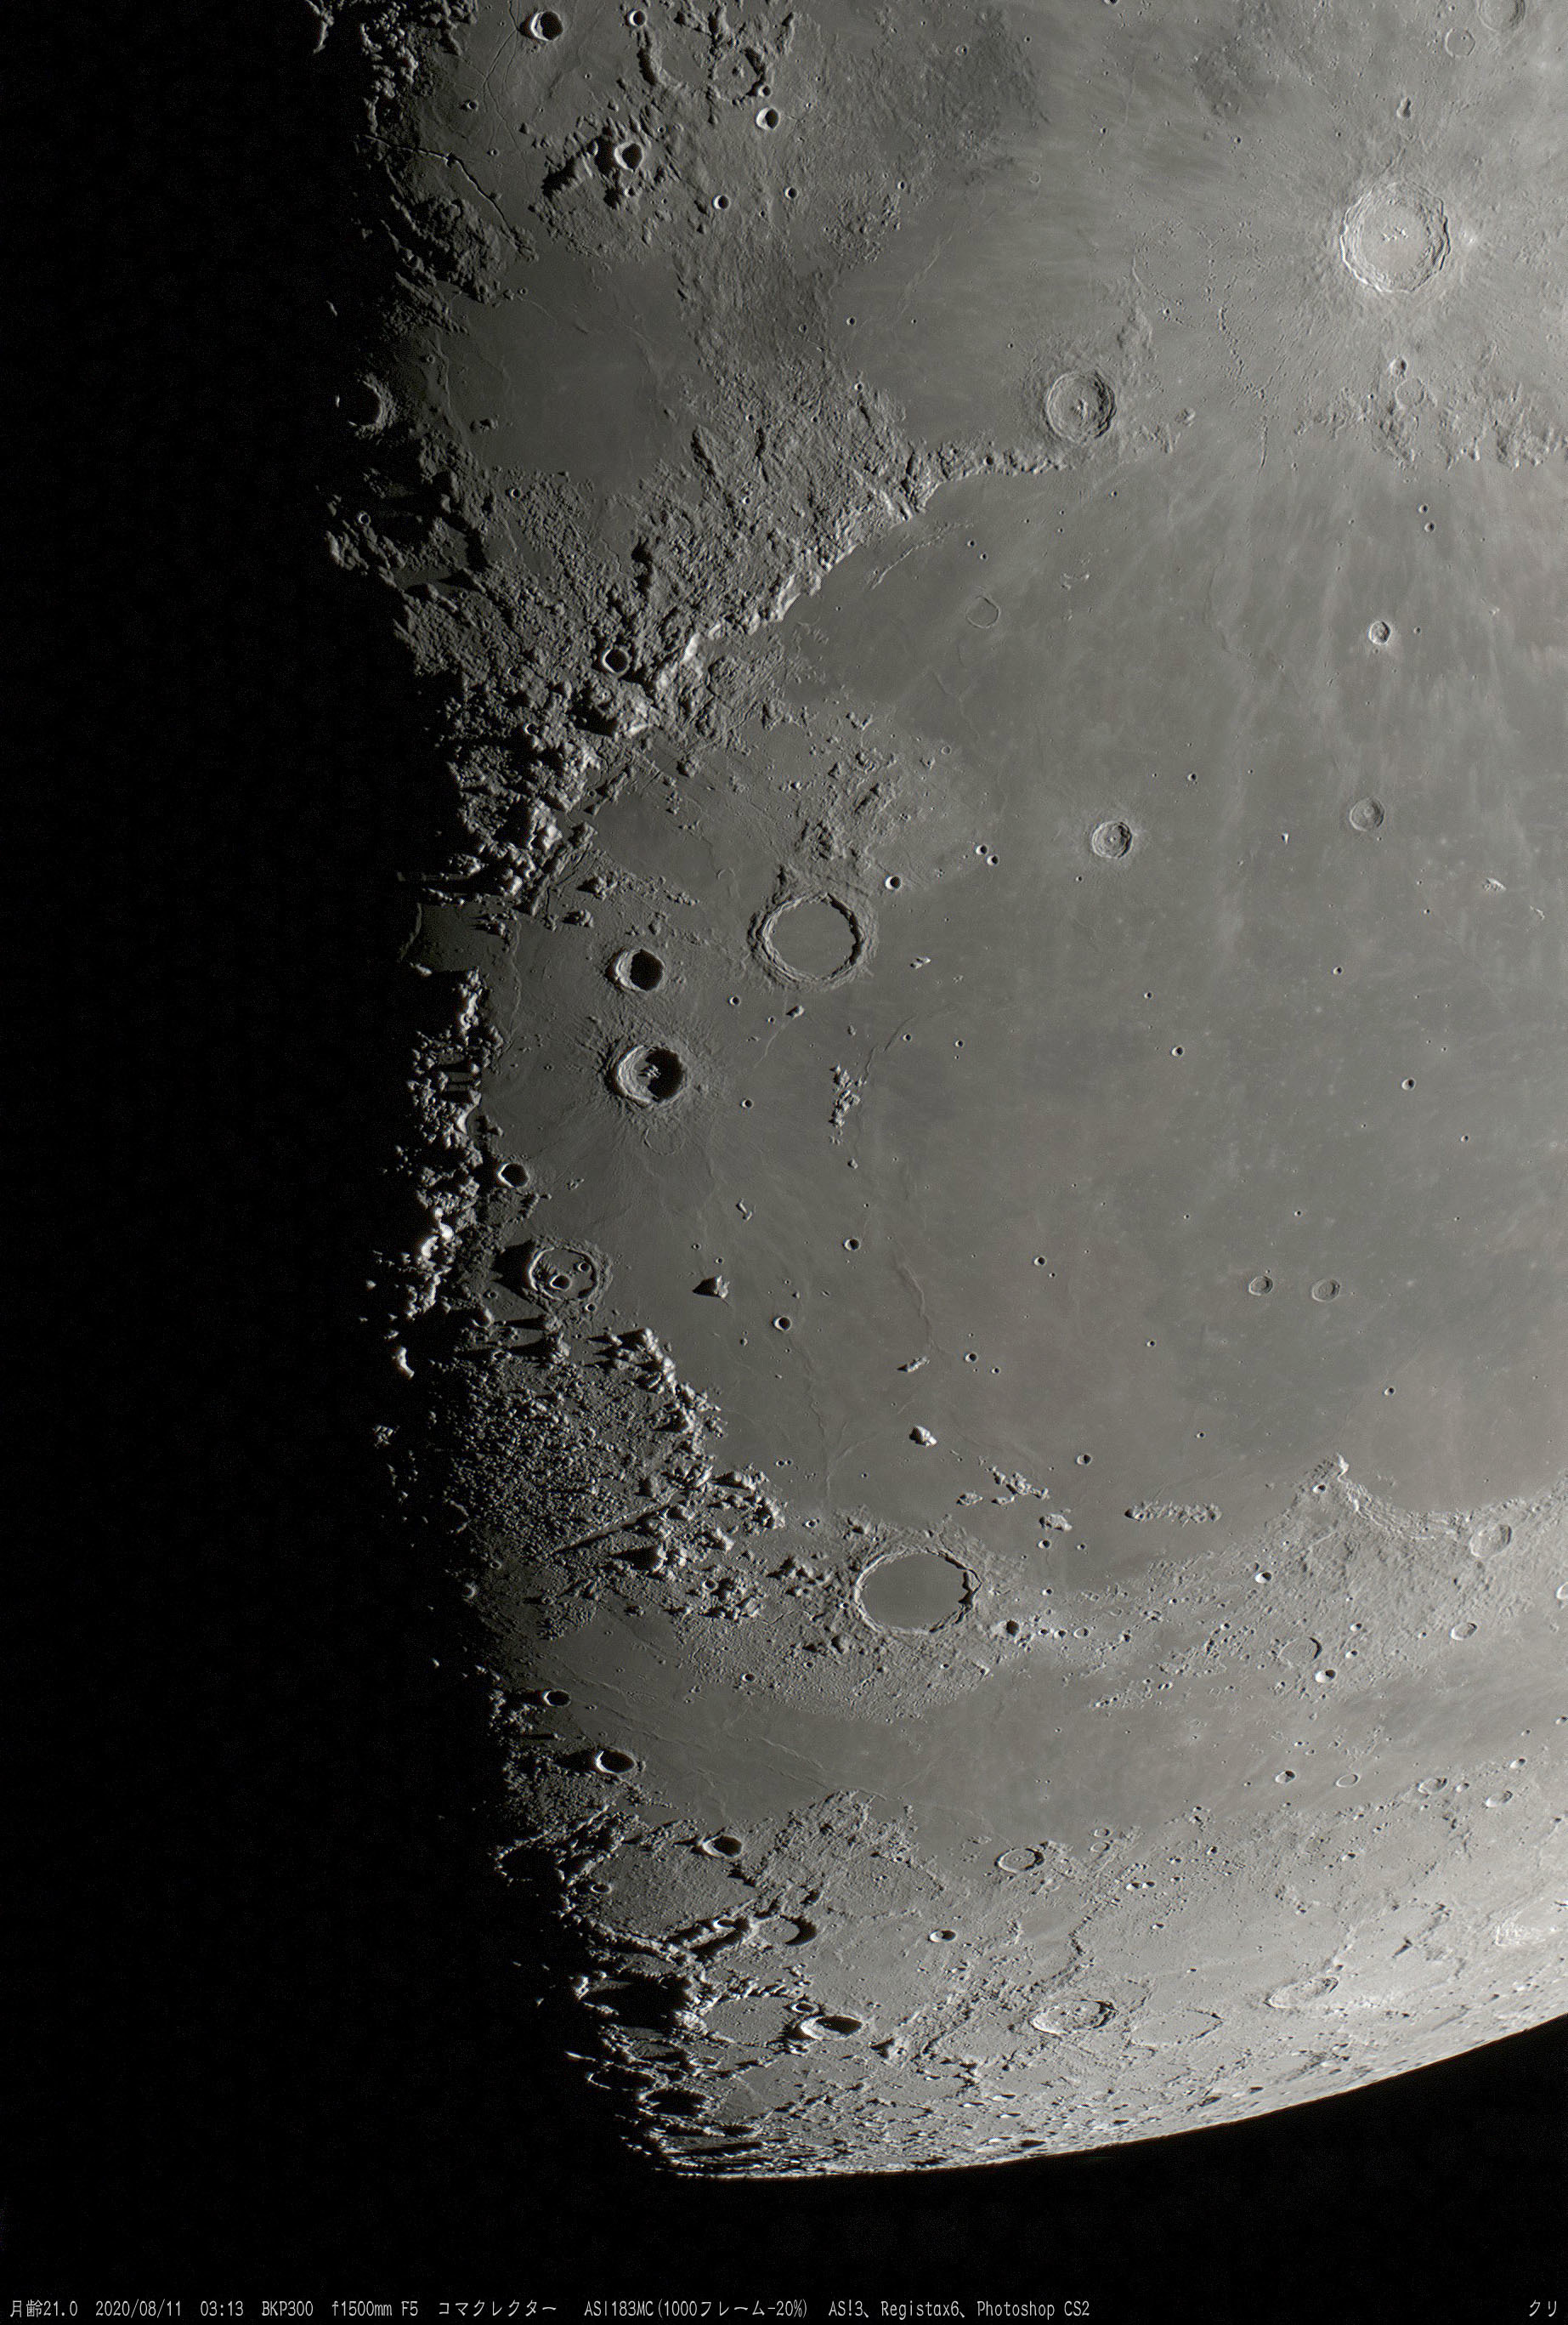 20200810MoonAge21_0(BKP300 ASI183MC)_031342-2